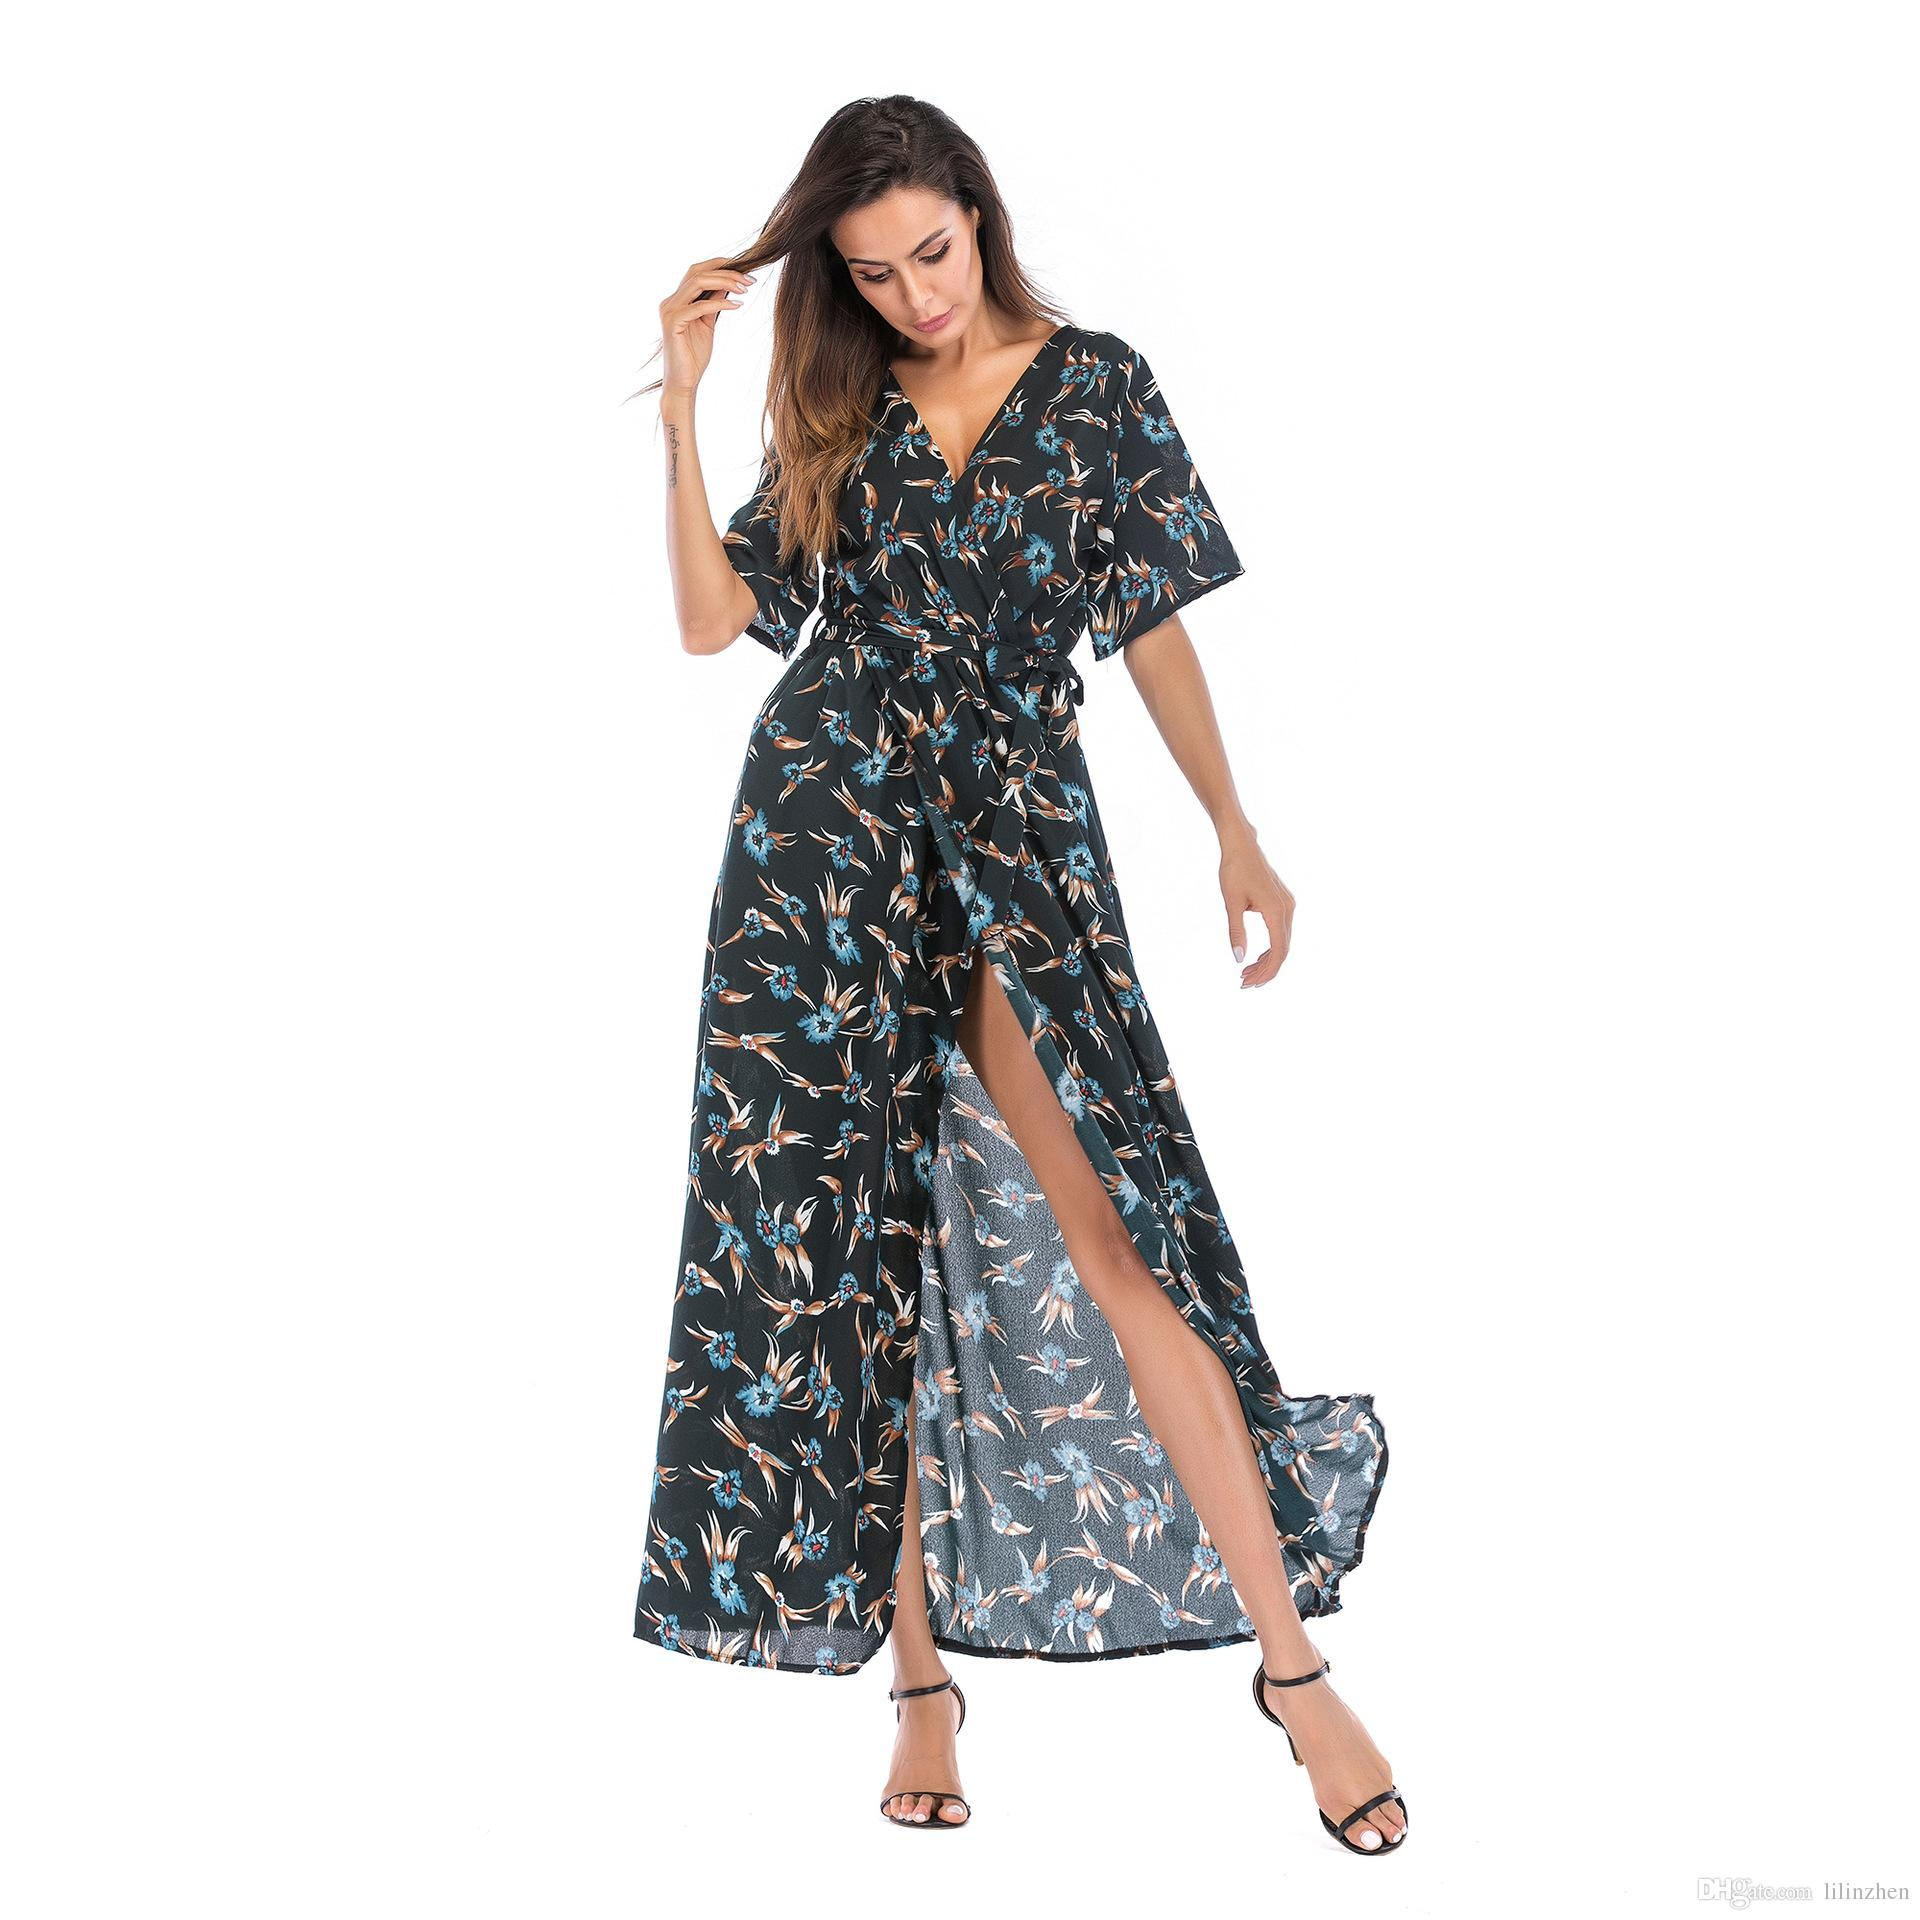 2019 Top Women's Dress Summer Holiday in Europe and America with Deep V-neck and Multi-color Short-sleeved Chiffon Beach Skirt